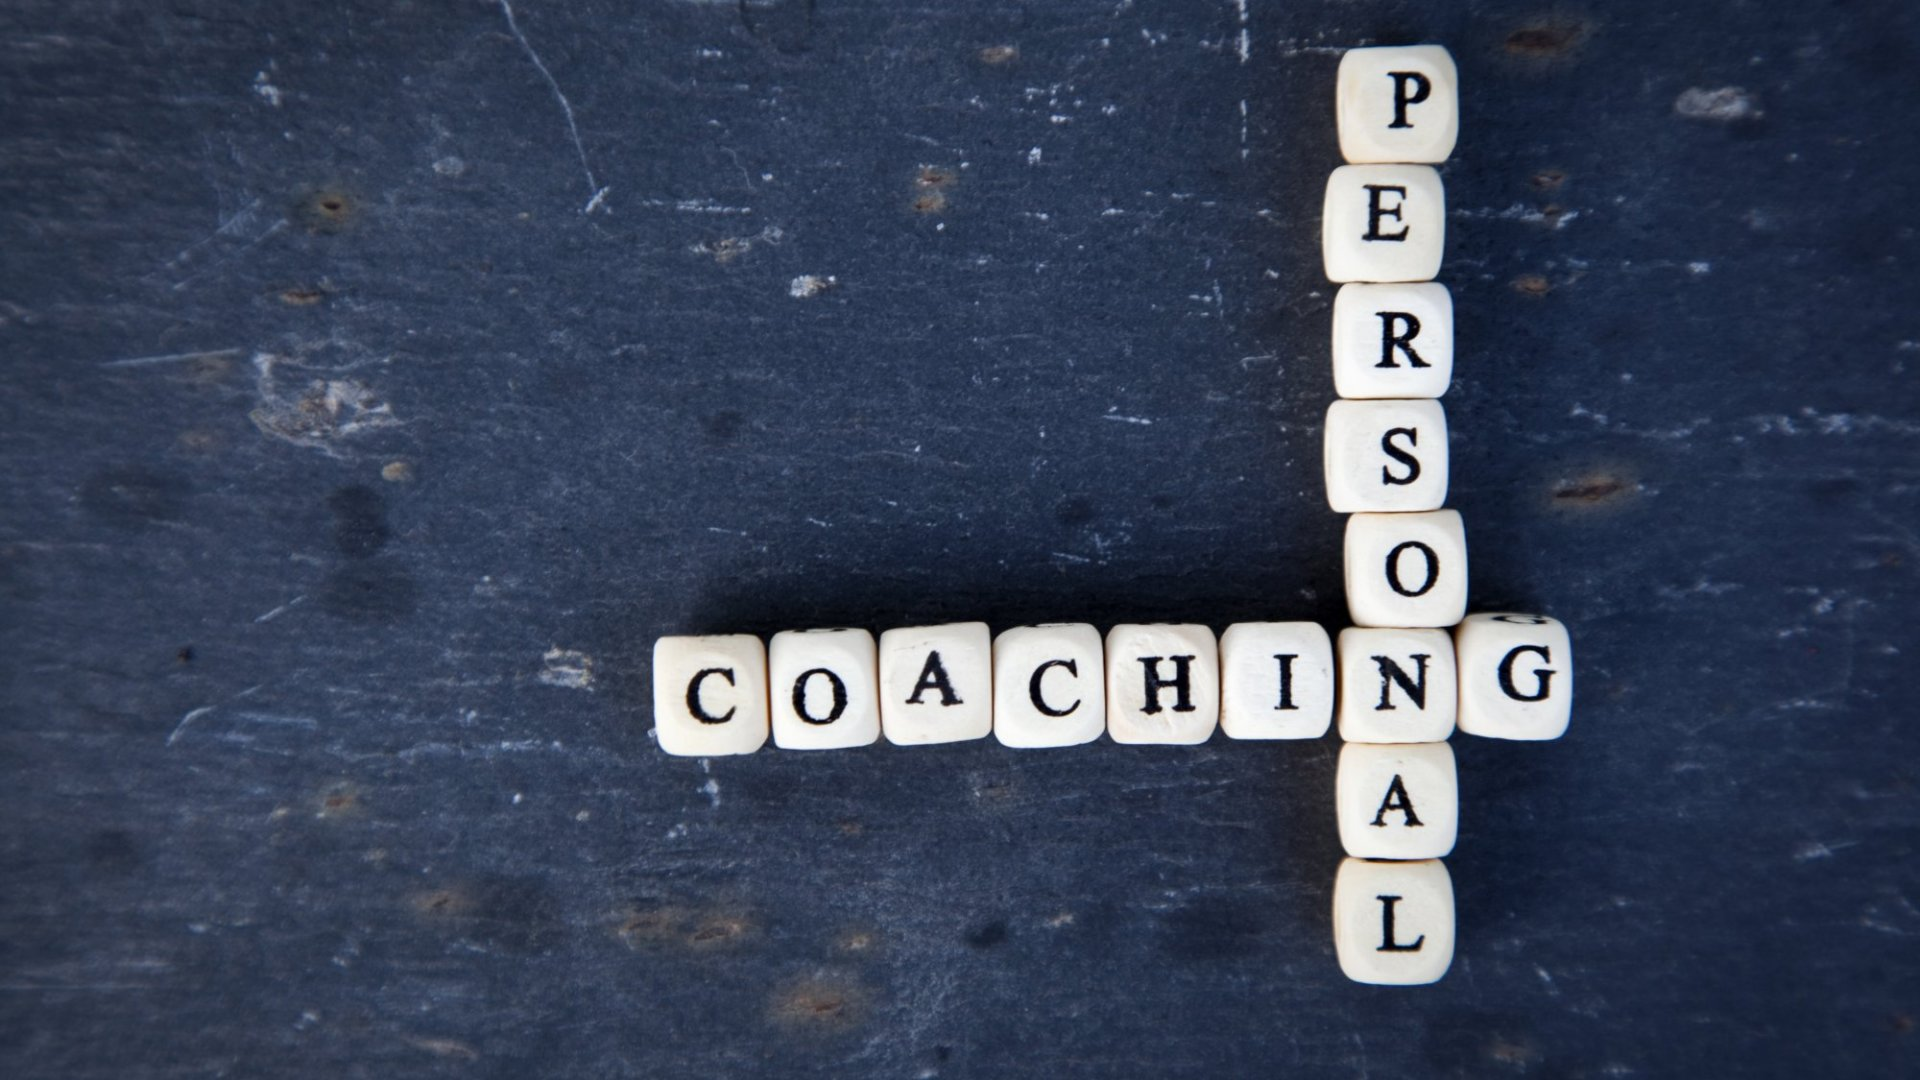 Top Leaders Are Self-Coaching. Here's How